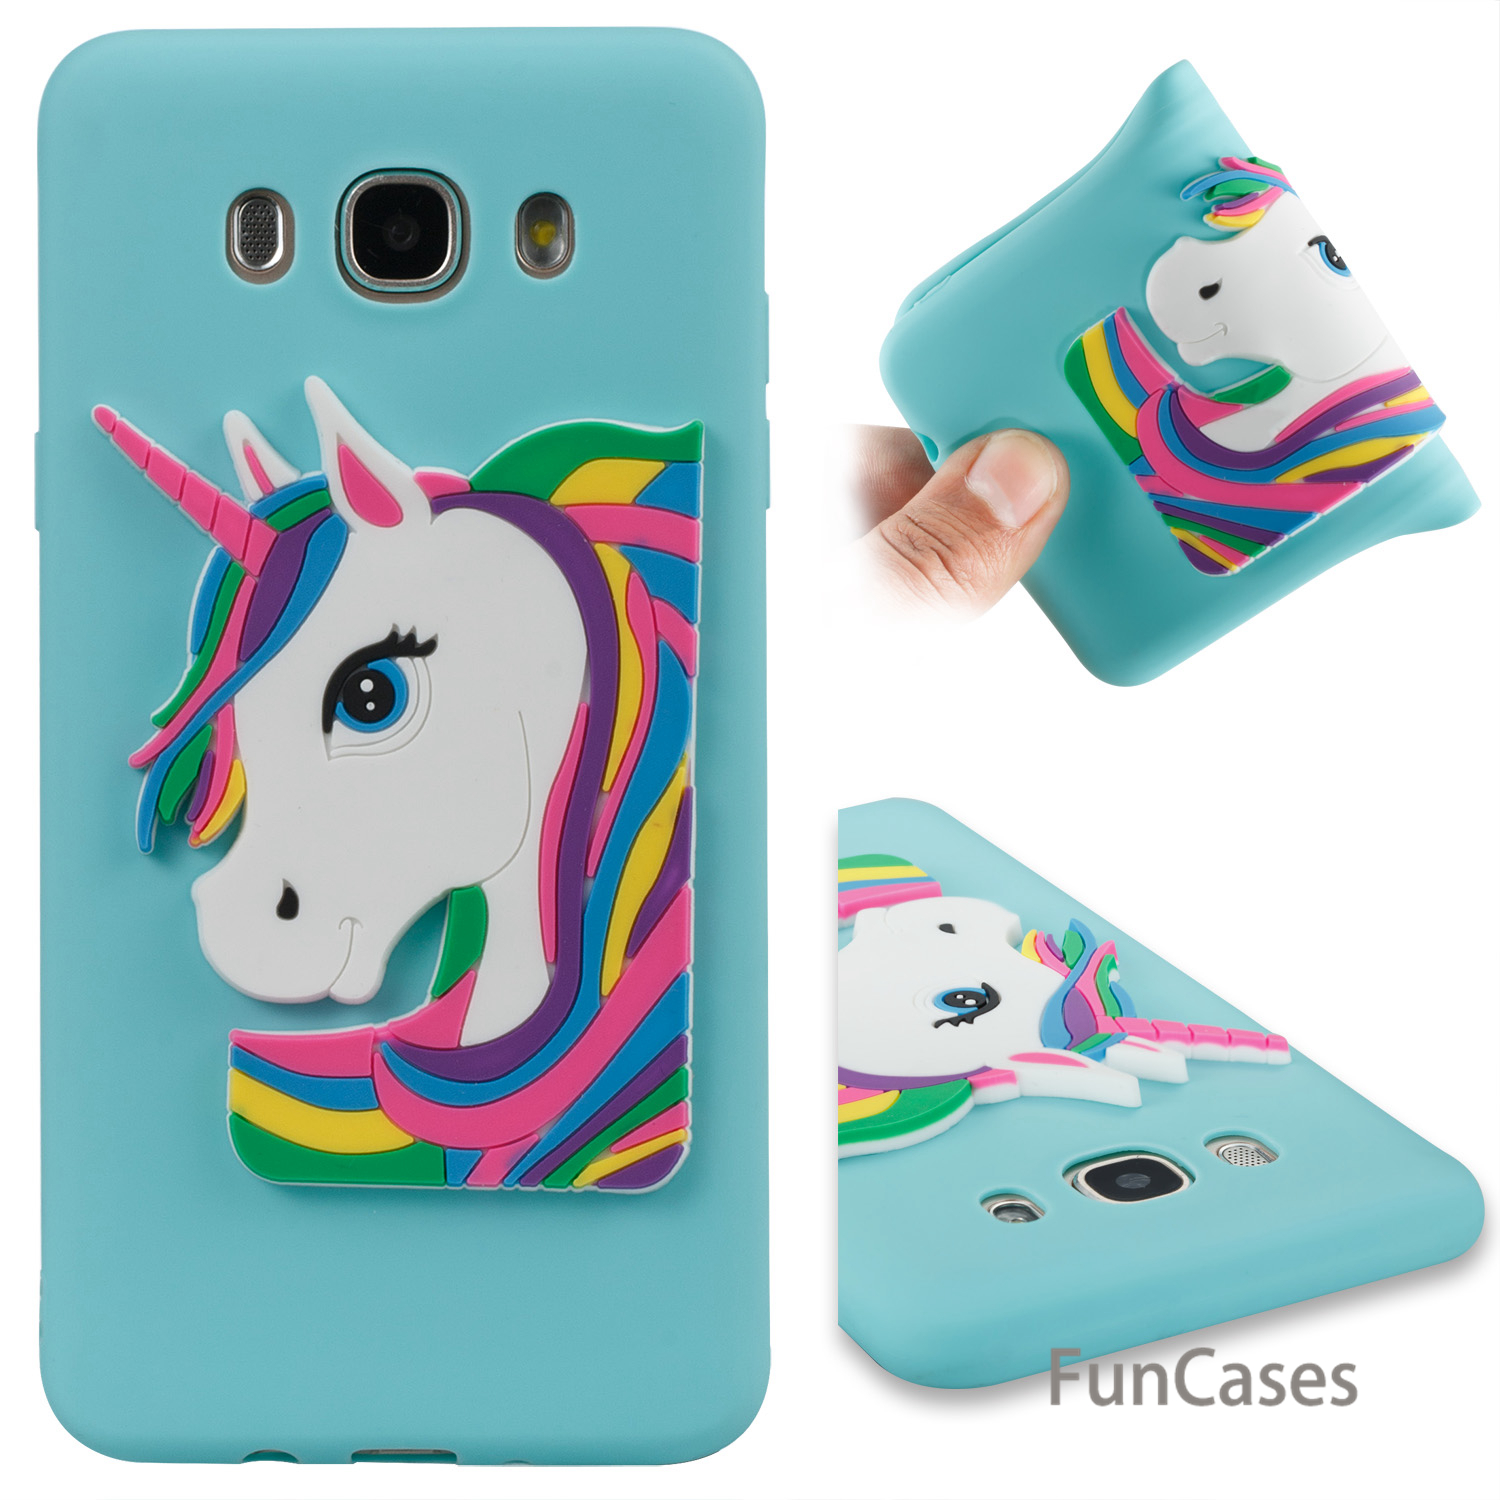 3D Unicorn Case sFor Coverage Samsung J710 Soft Silicone Back Cover Estojo Floral Telefon Aksesuar Case Samsung Galaxy J7 2016